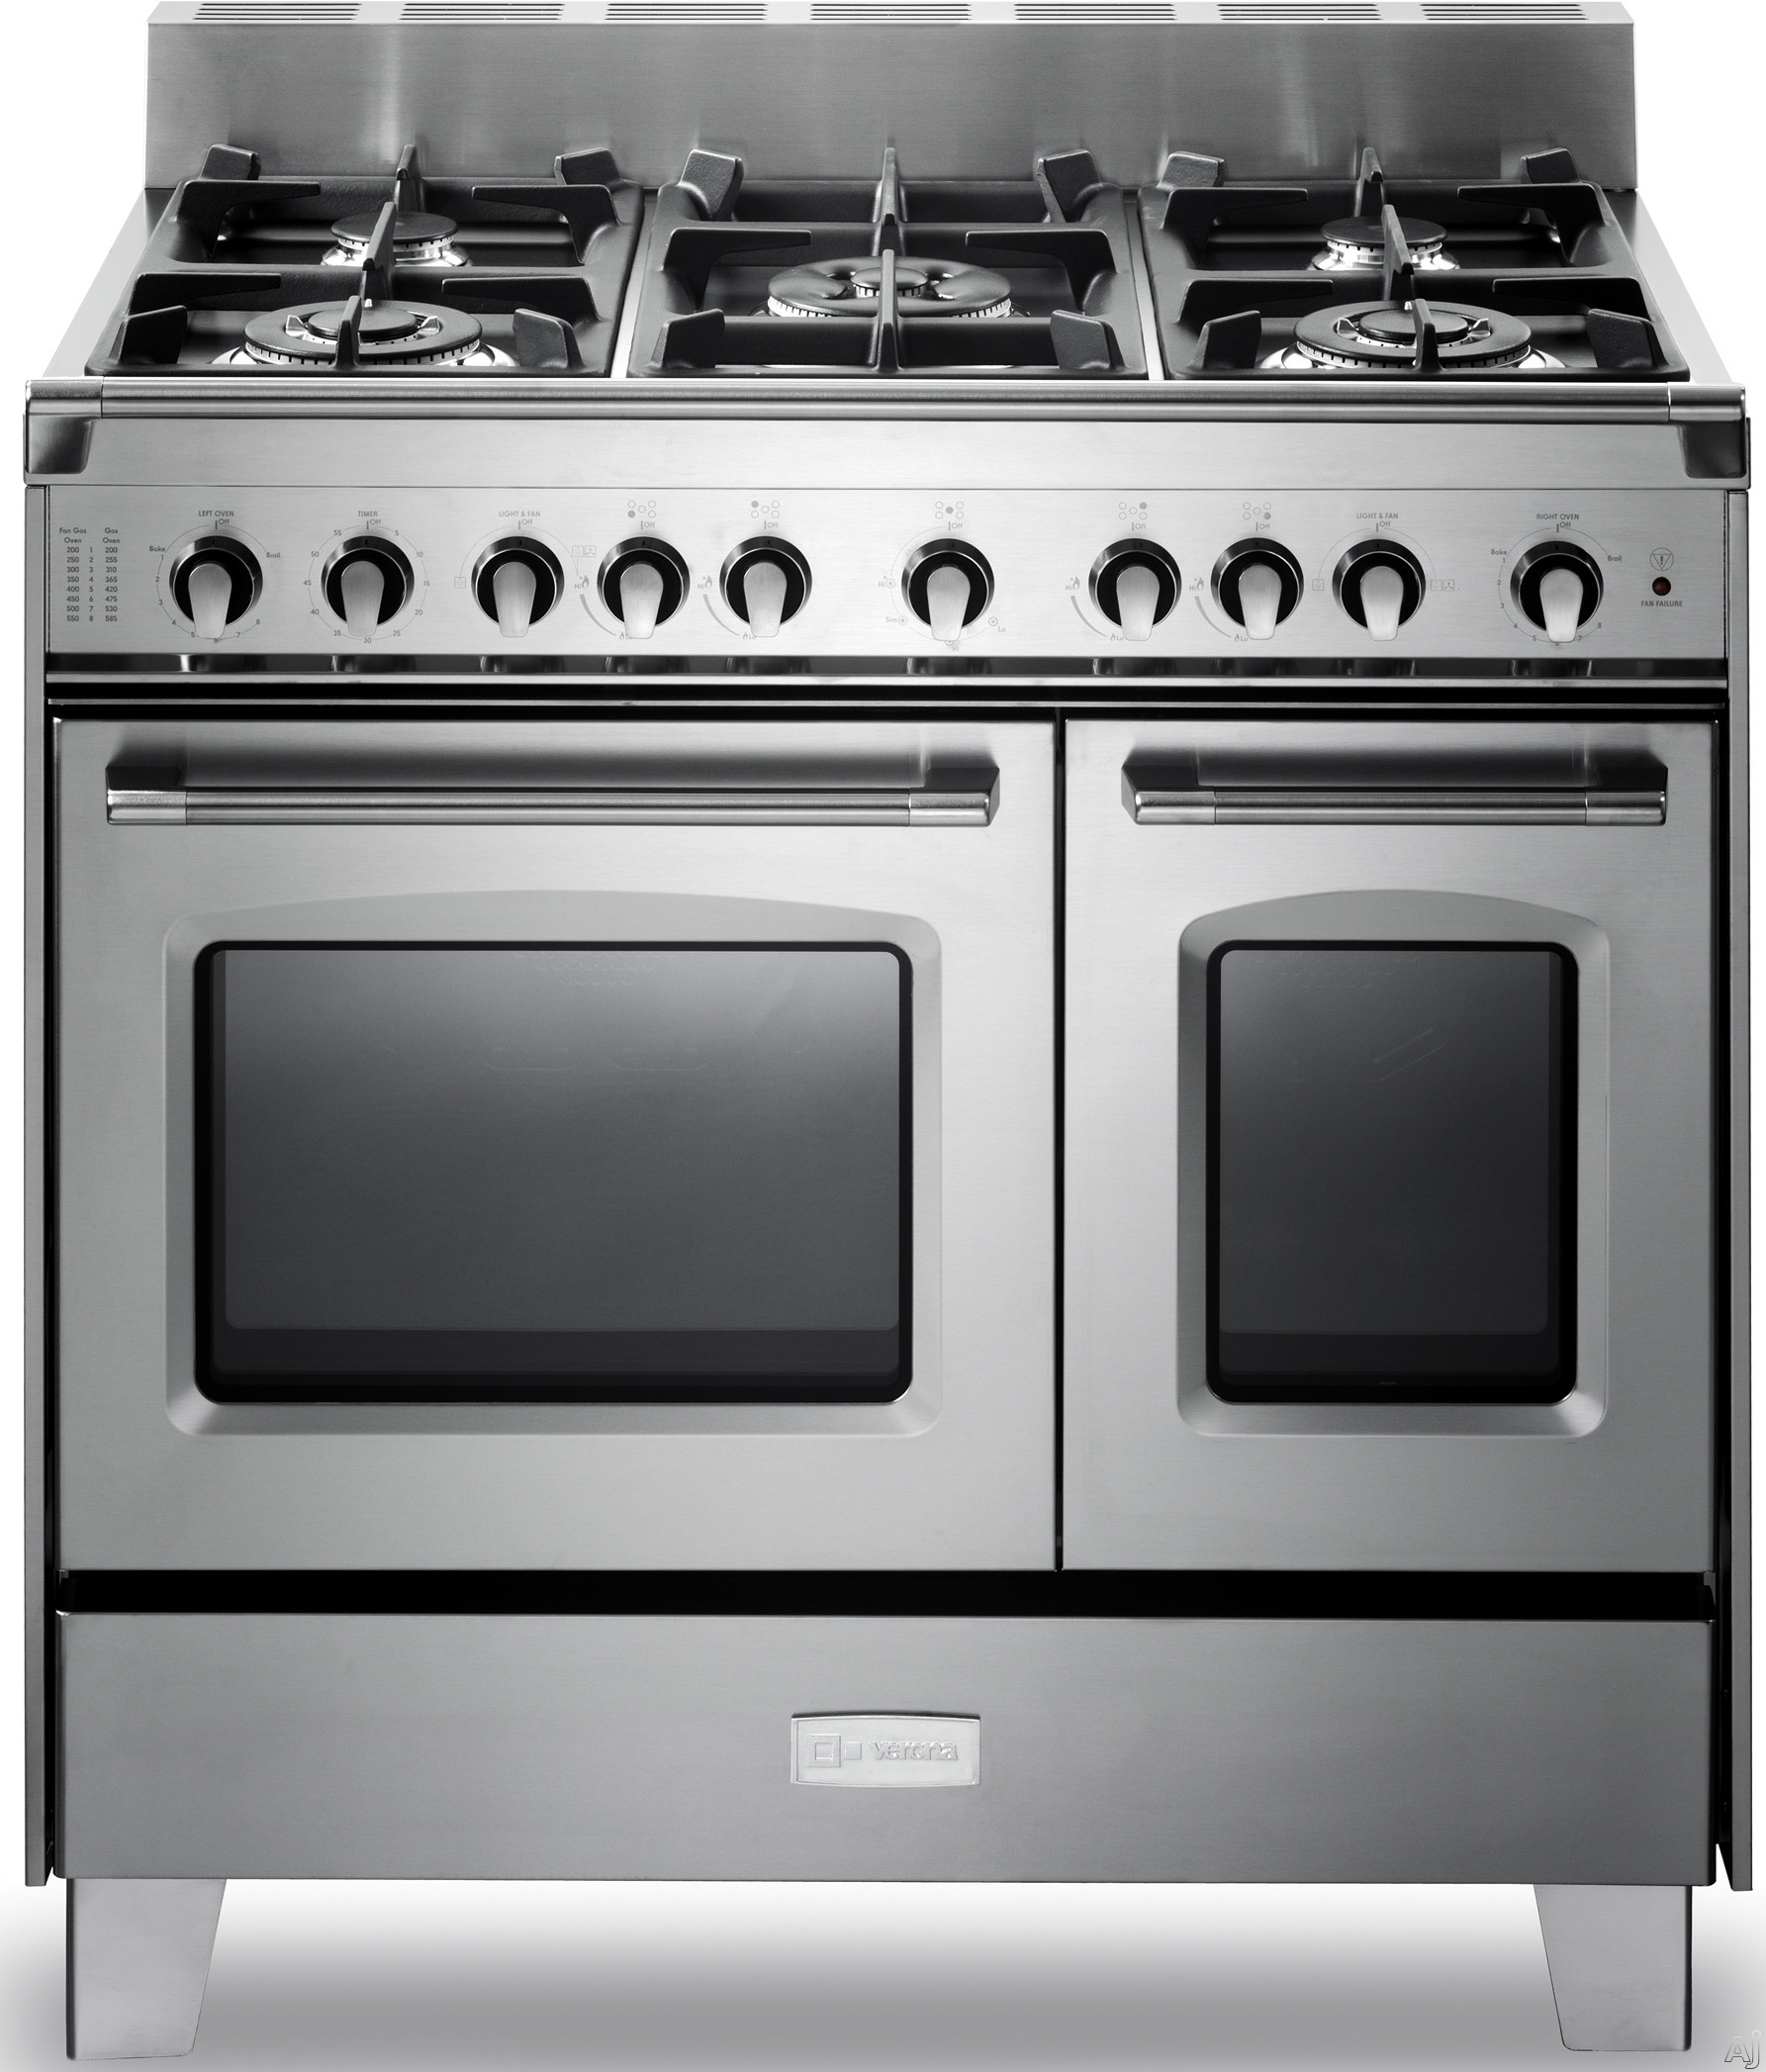 Verona Classic Series VCLFSGG365DSS 36 Inch Pro-Style Gas Range with 4 cu. ft. Total Oven Capacity, 5 Sealed Burners, Convection Main Oven, Infrared Broiler, Bell Timer, Glide Rack and Storage Drawer: